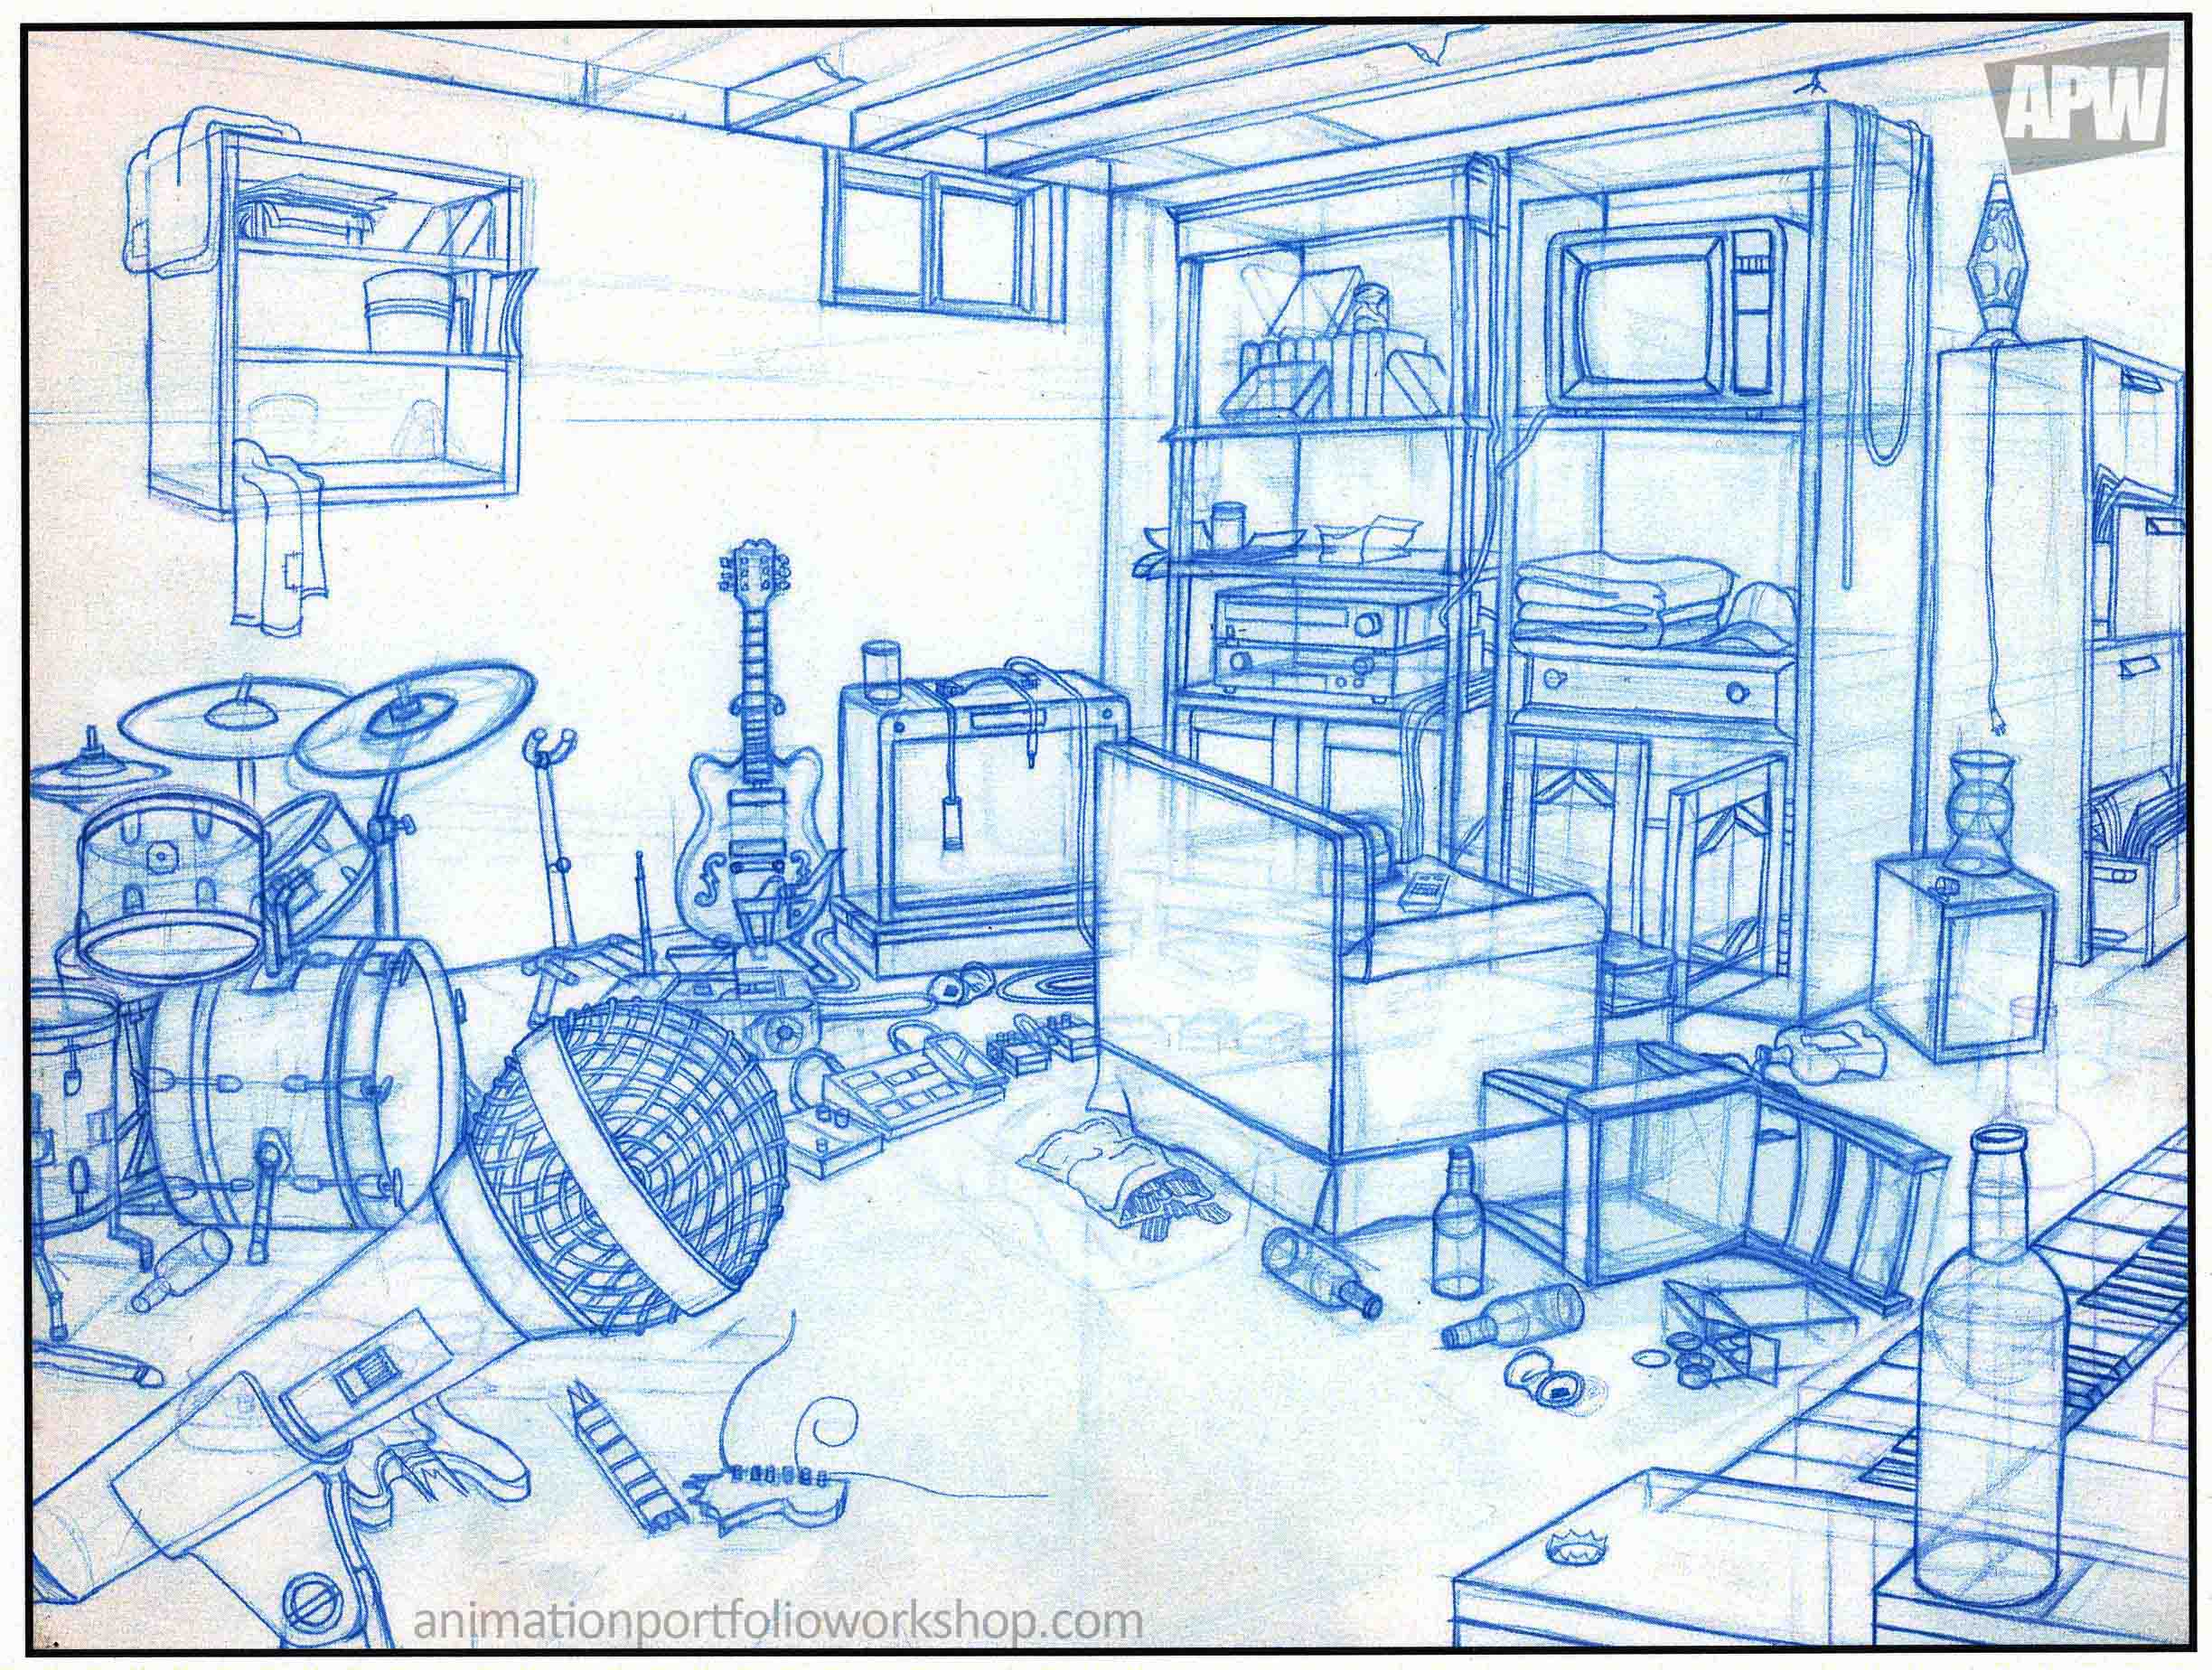 Animation Portfolio Room Drawings Animation Portfolio